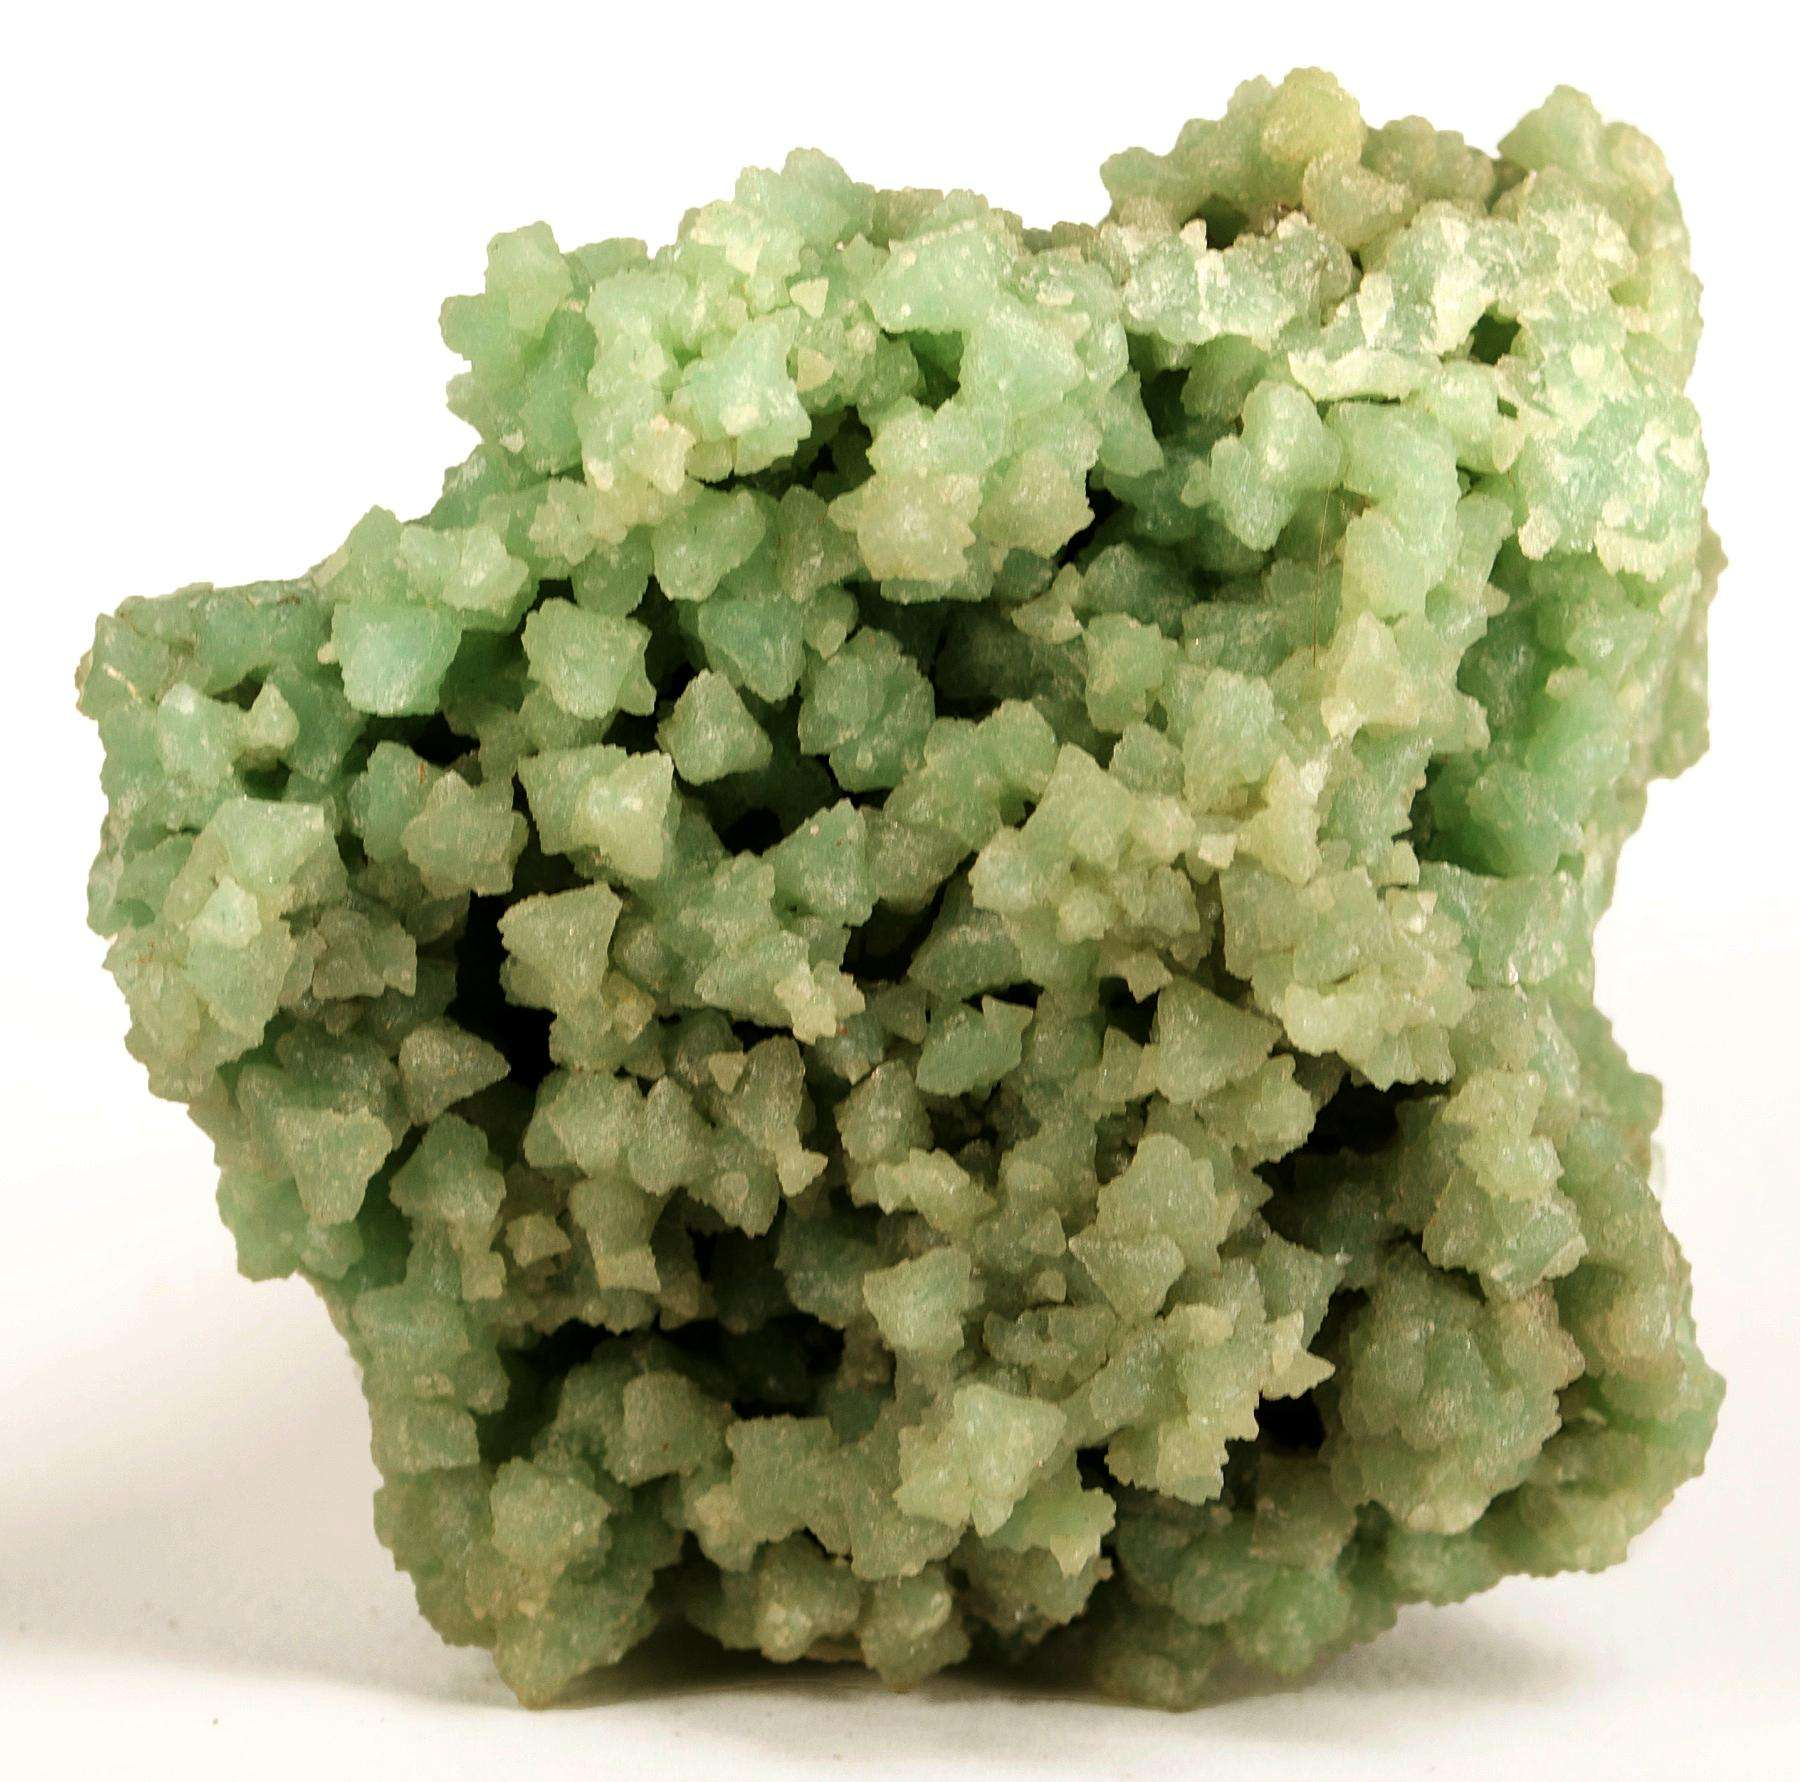 Lustrous frosted light green boracite crystals 5 mm totally comprise